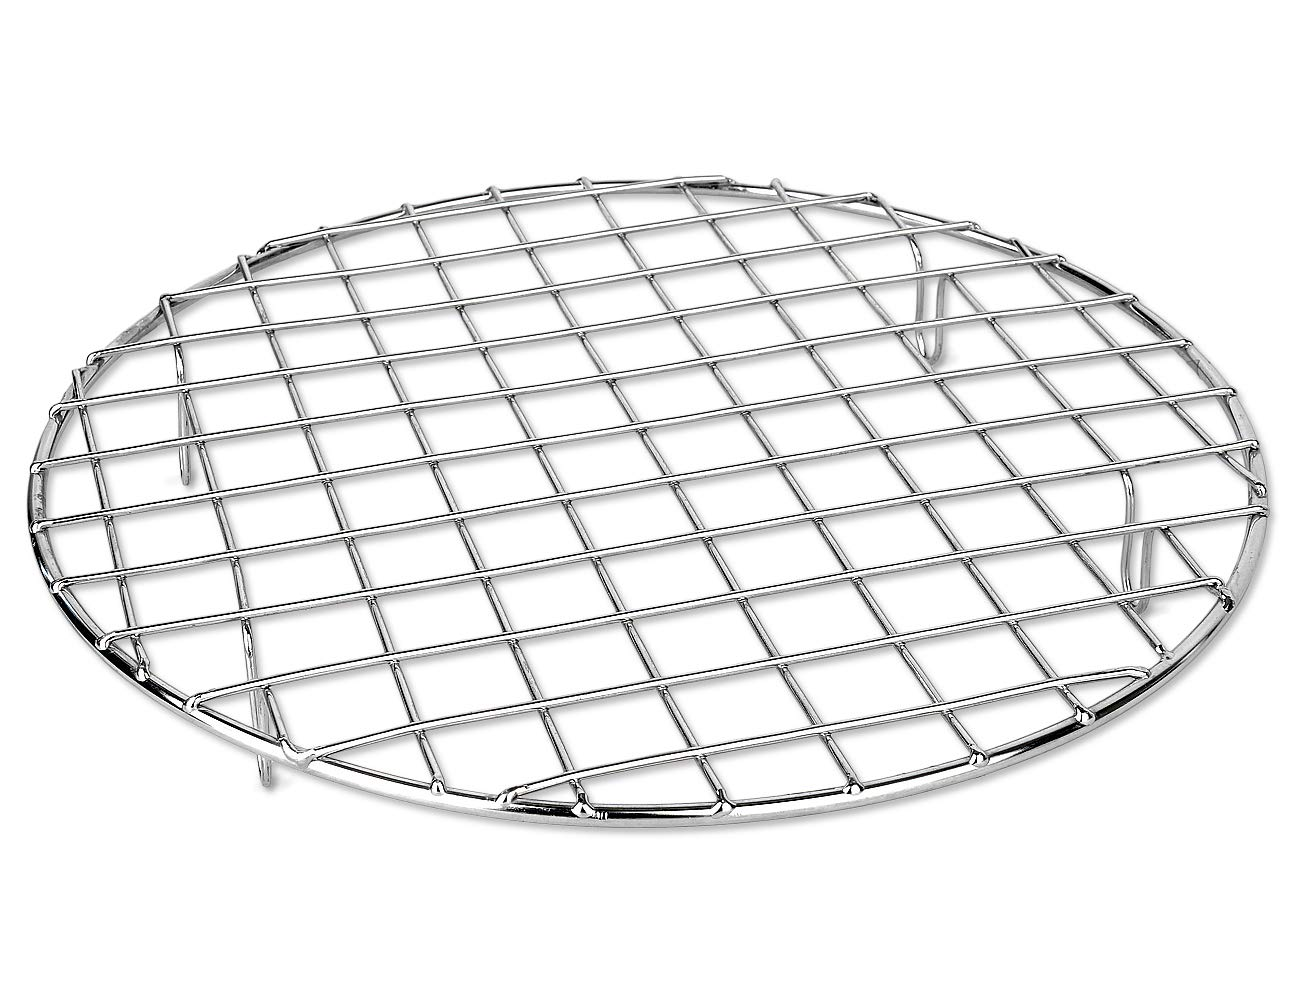 Bafvt BBQ Accessories Grill Rack - 304 Stainless Steel Baking Cooking Round Rack for Rib Cookie Cakes, 10 inches